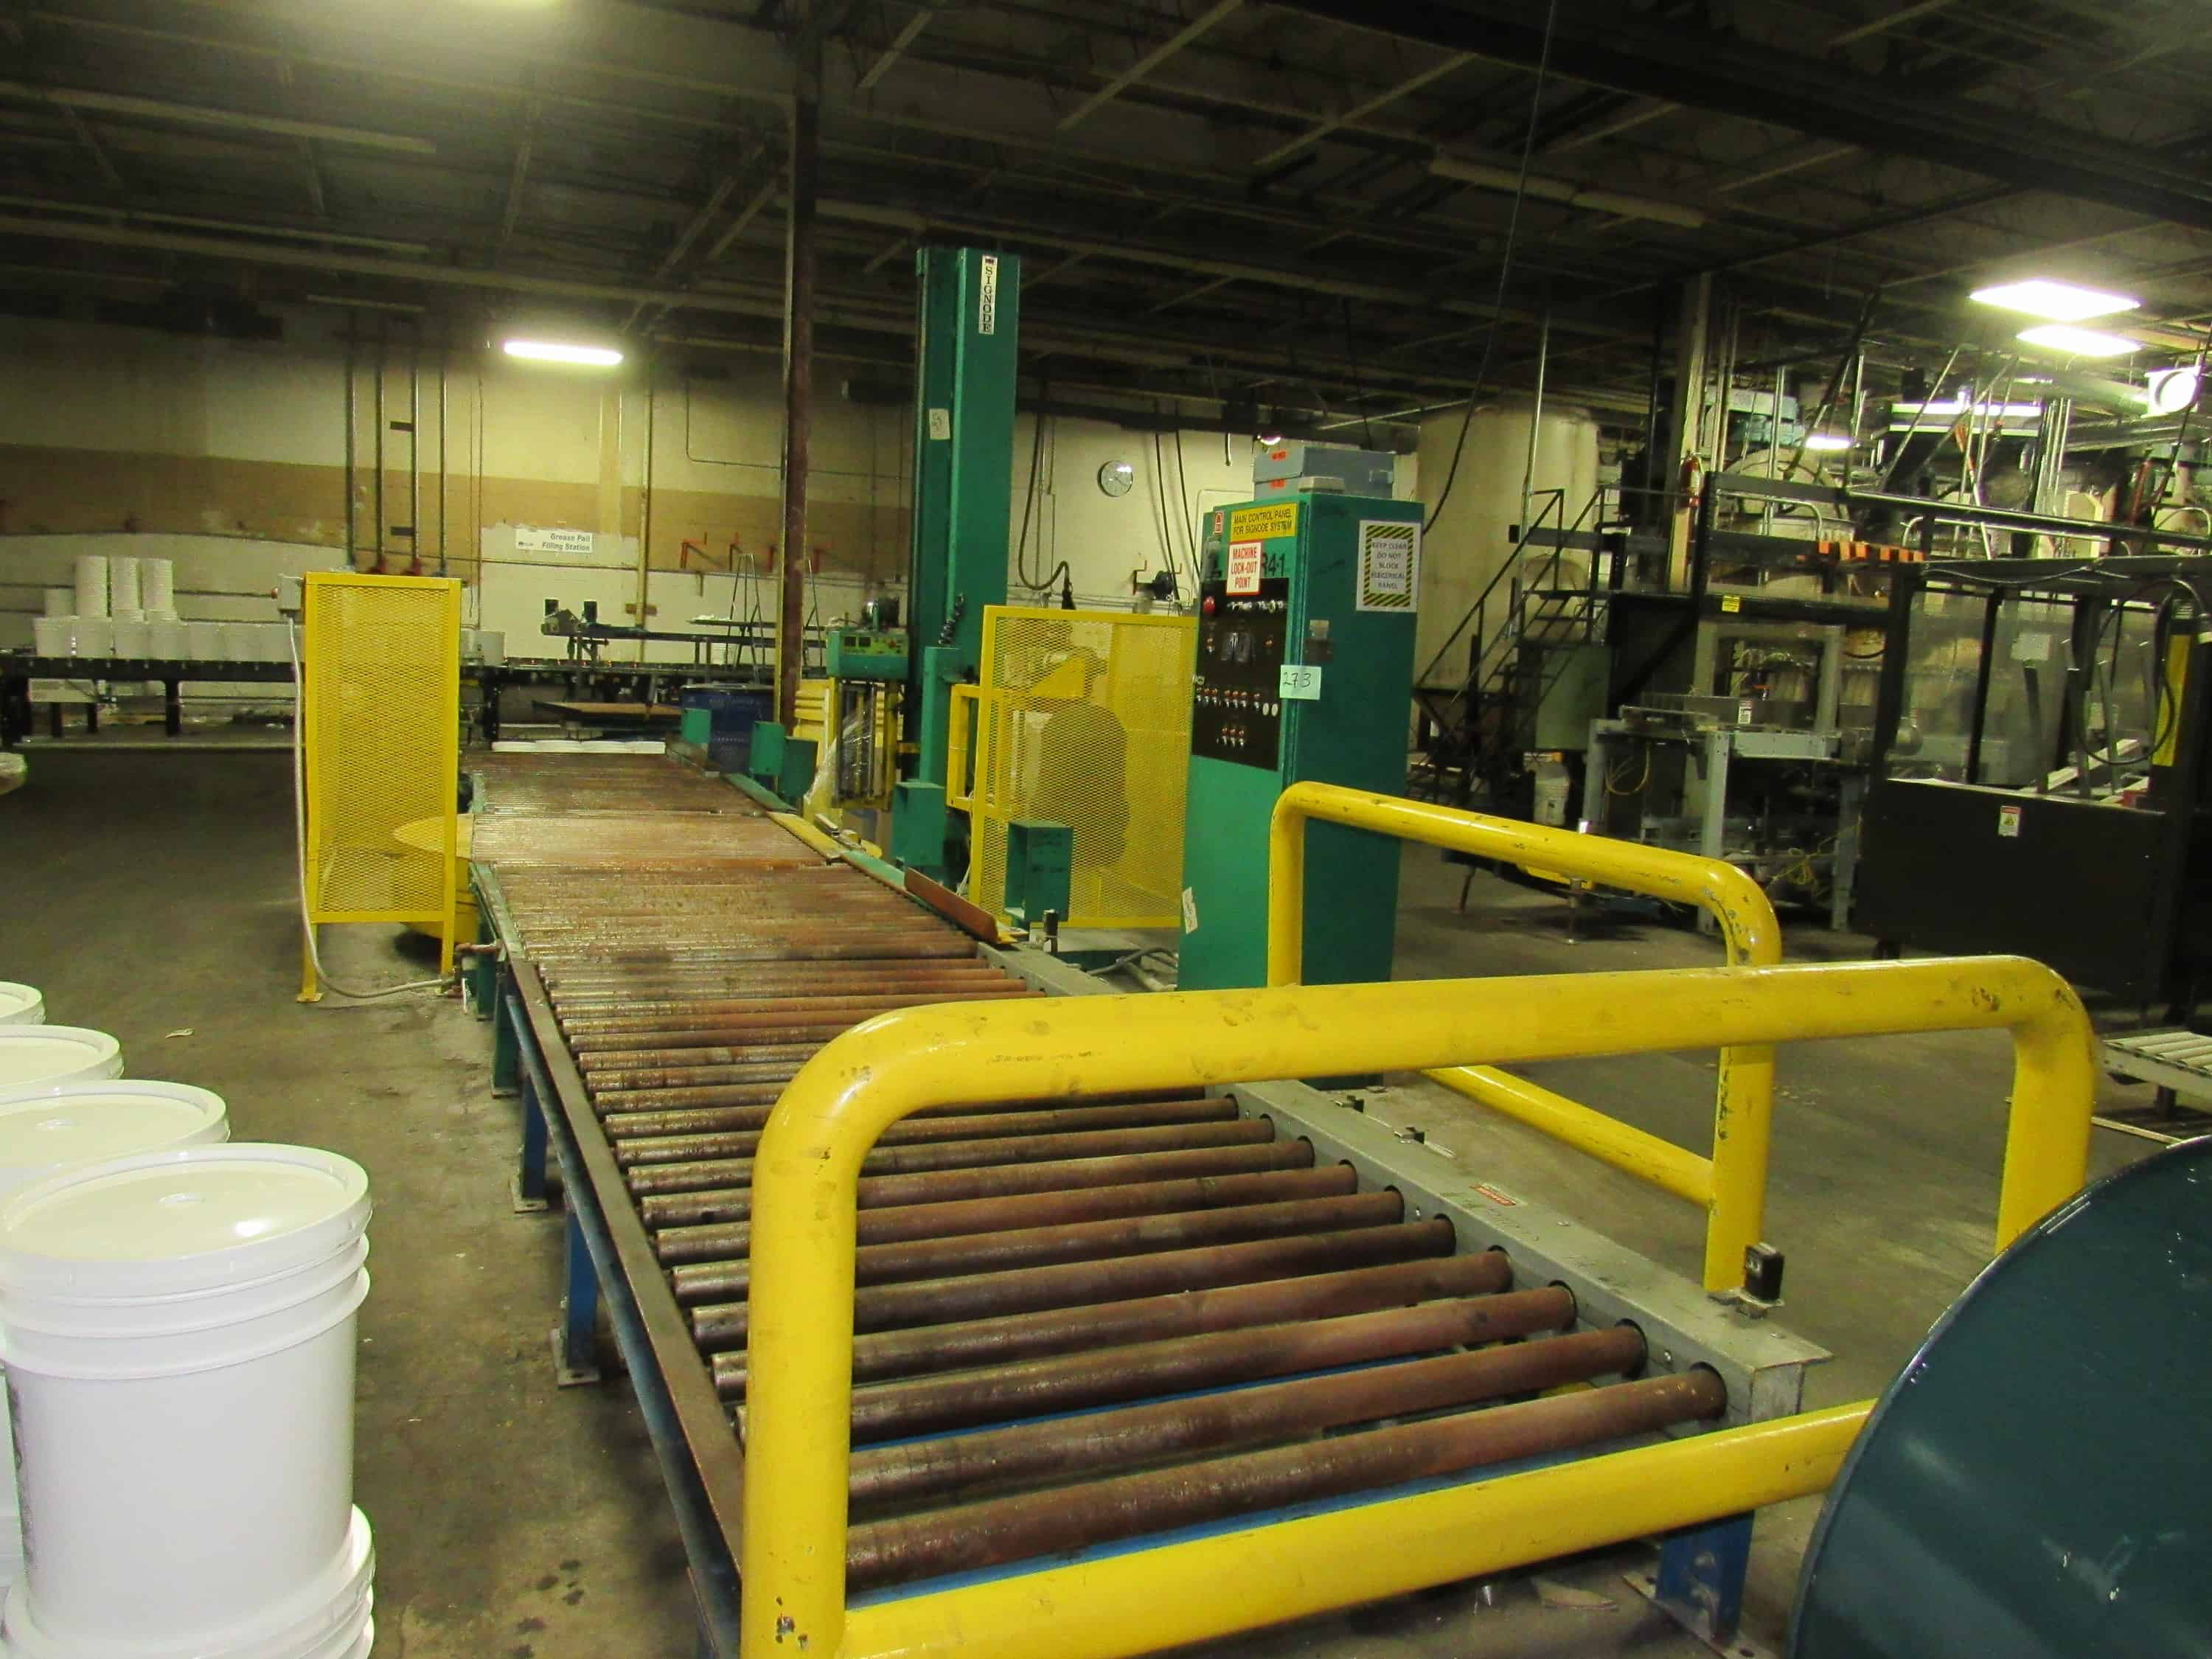 Signoid Automatic Stretch Wrapper with 10 ft infeed and about 15 ft outfeed roller conveyor, currently in operation  -- (LOCATED IN IOWA, RIGGING Iand loading $1250.00***EUSA